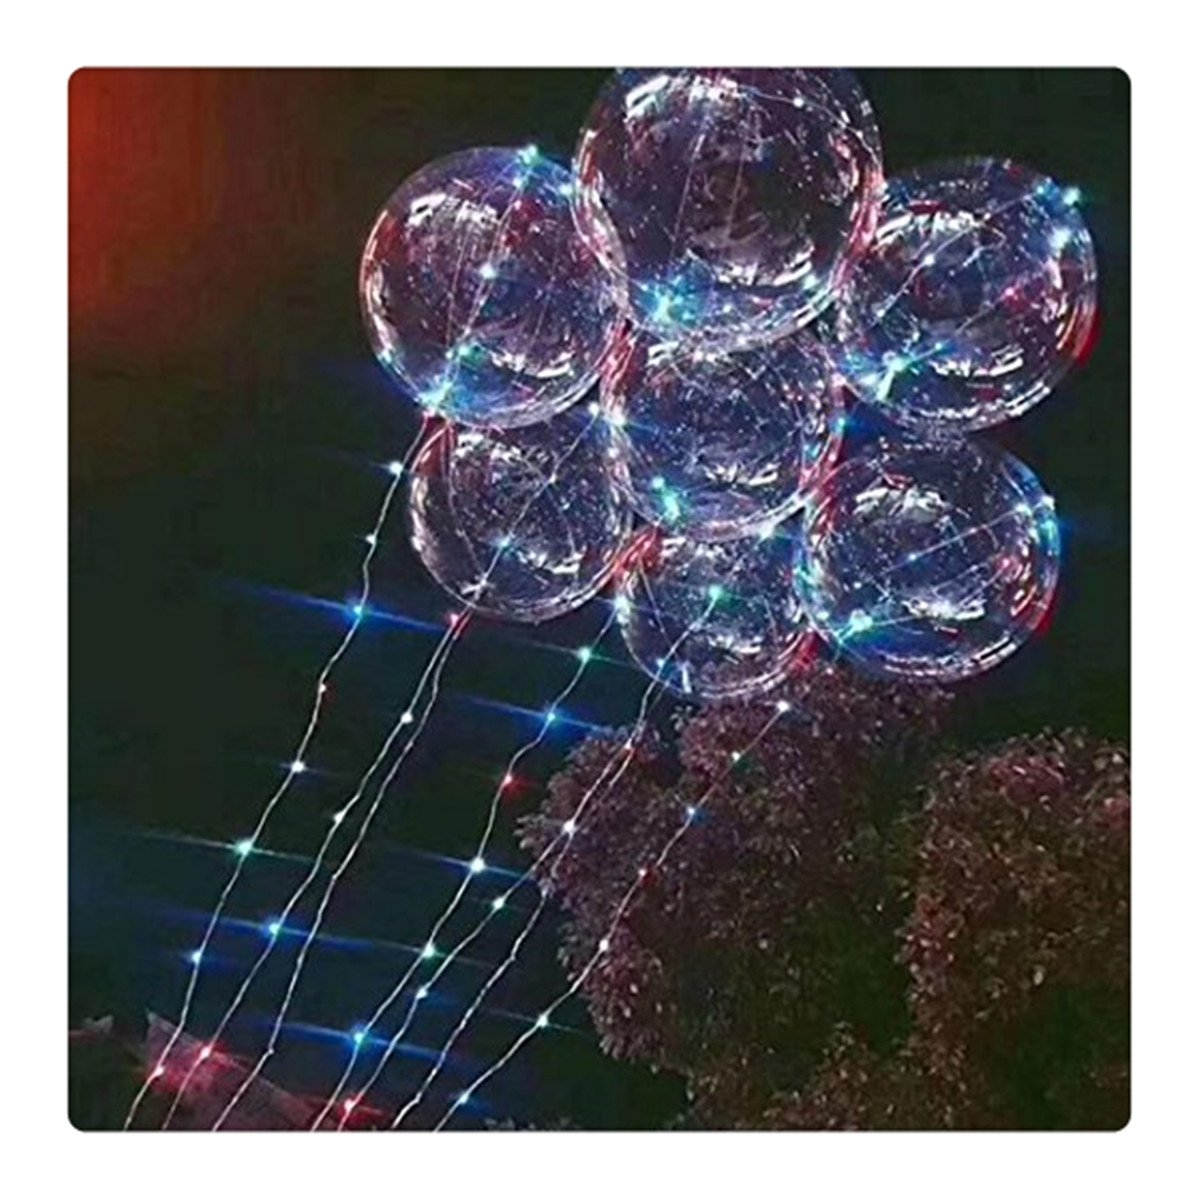 FTXJ 20 inches Fully Inflated Bubble Balloon LED String Lights, RGB Multi-Colors Bubble Lights for Party, Birthday, Fillable with Helium and 72hours Working Time-Multi (20 inches, Multicolor)